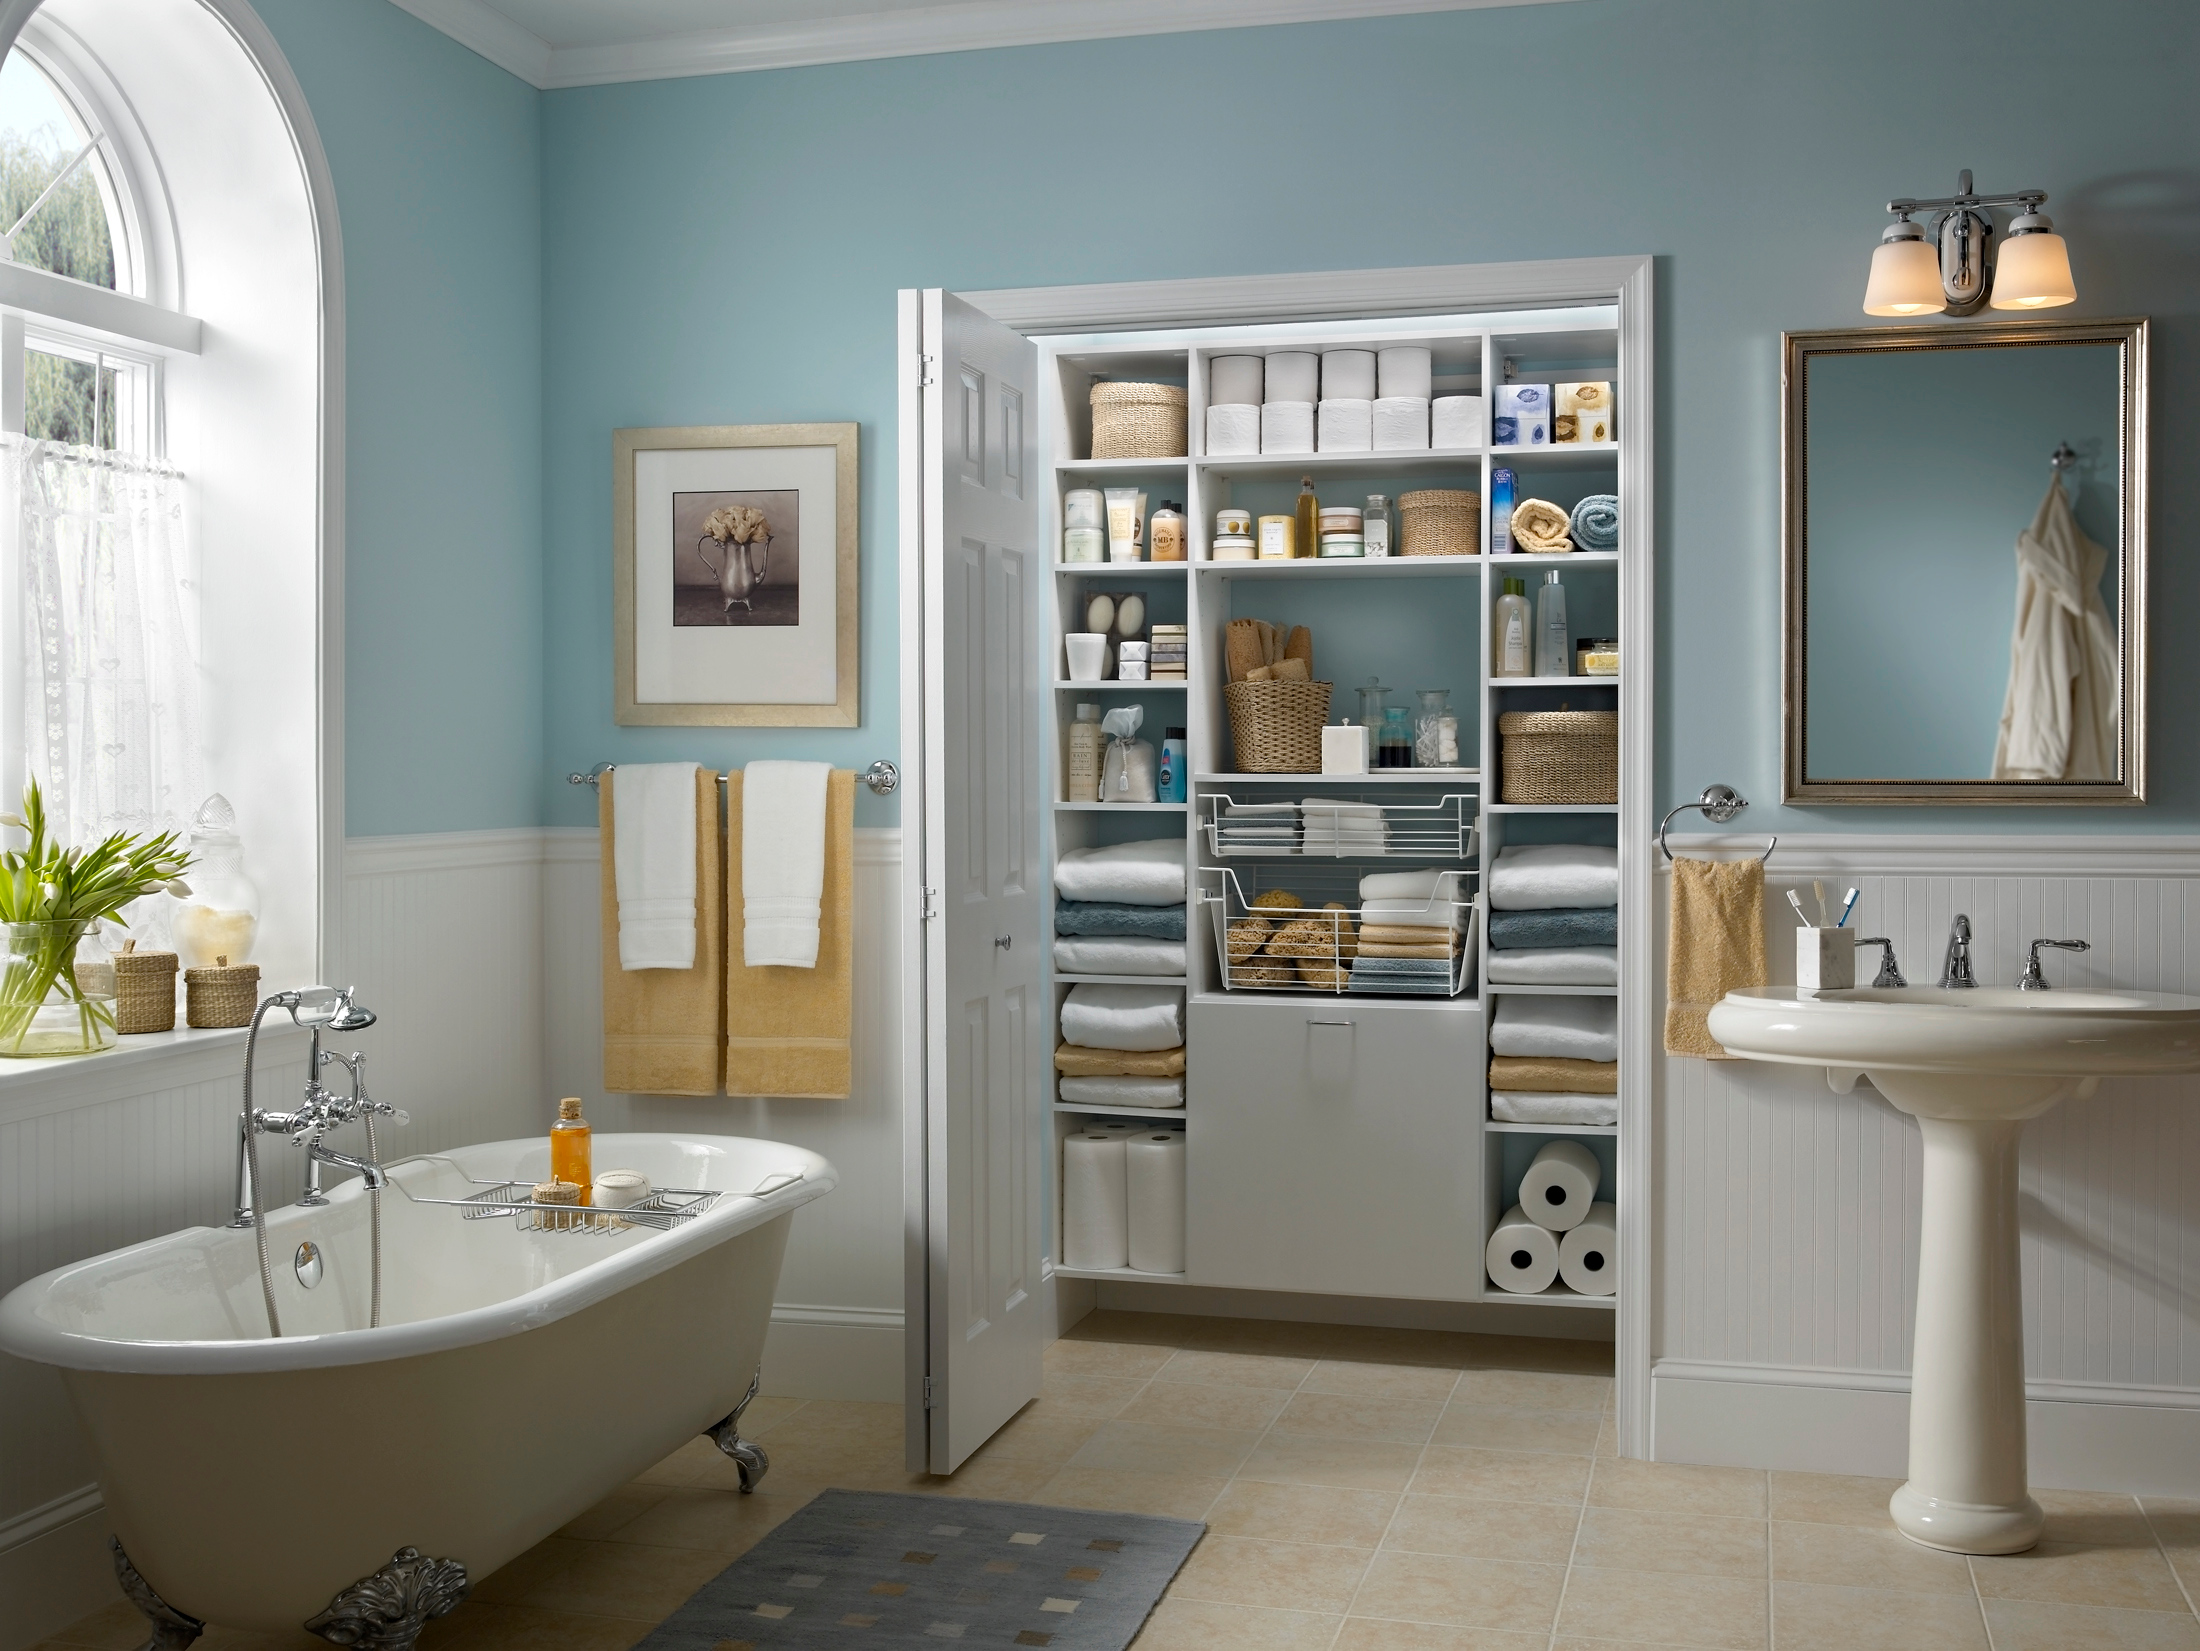 The Ultimate Guide for Cleaning and Organizing Your Bathroom